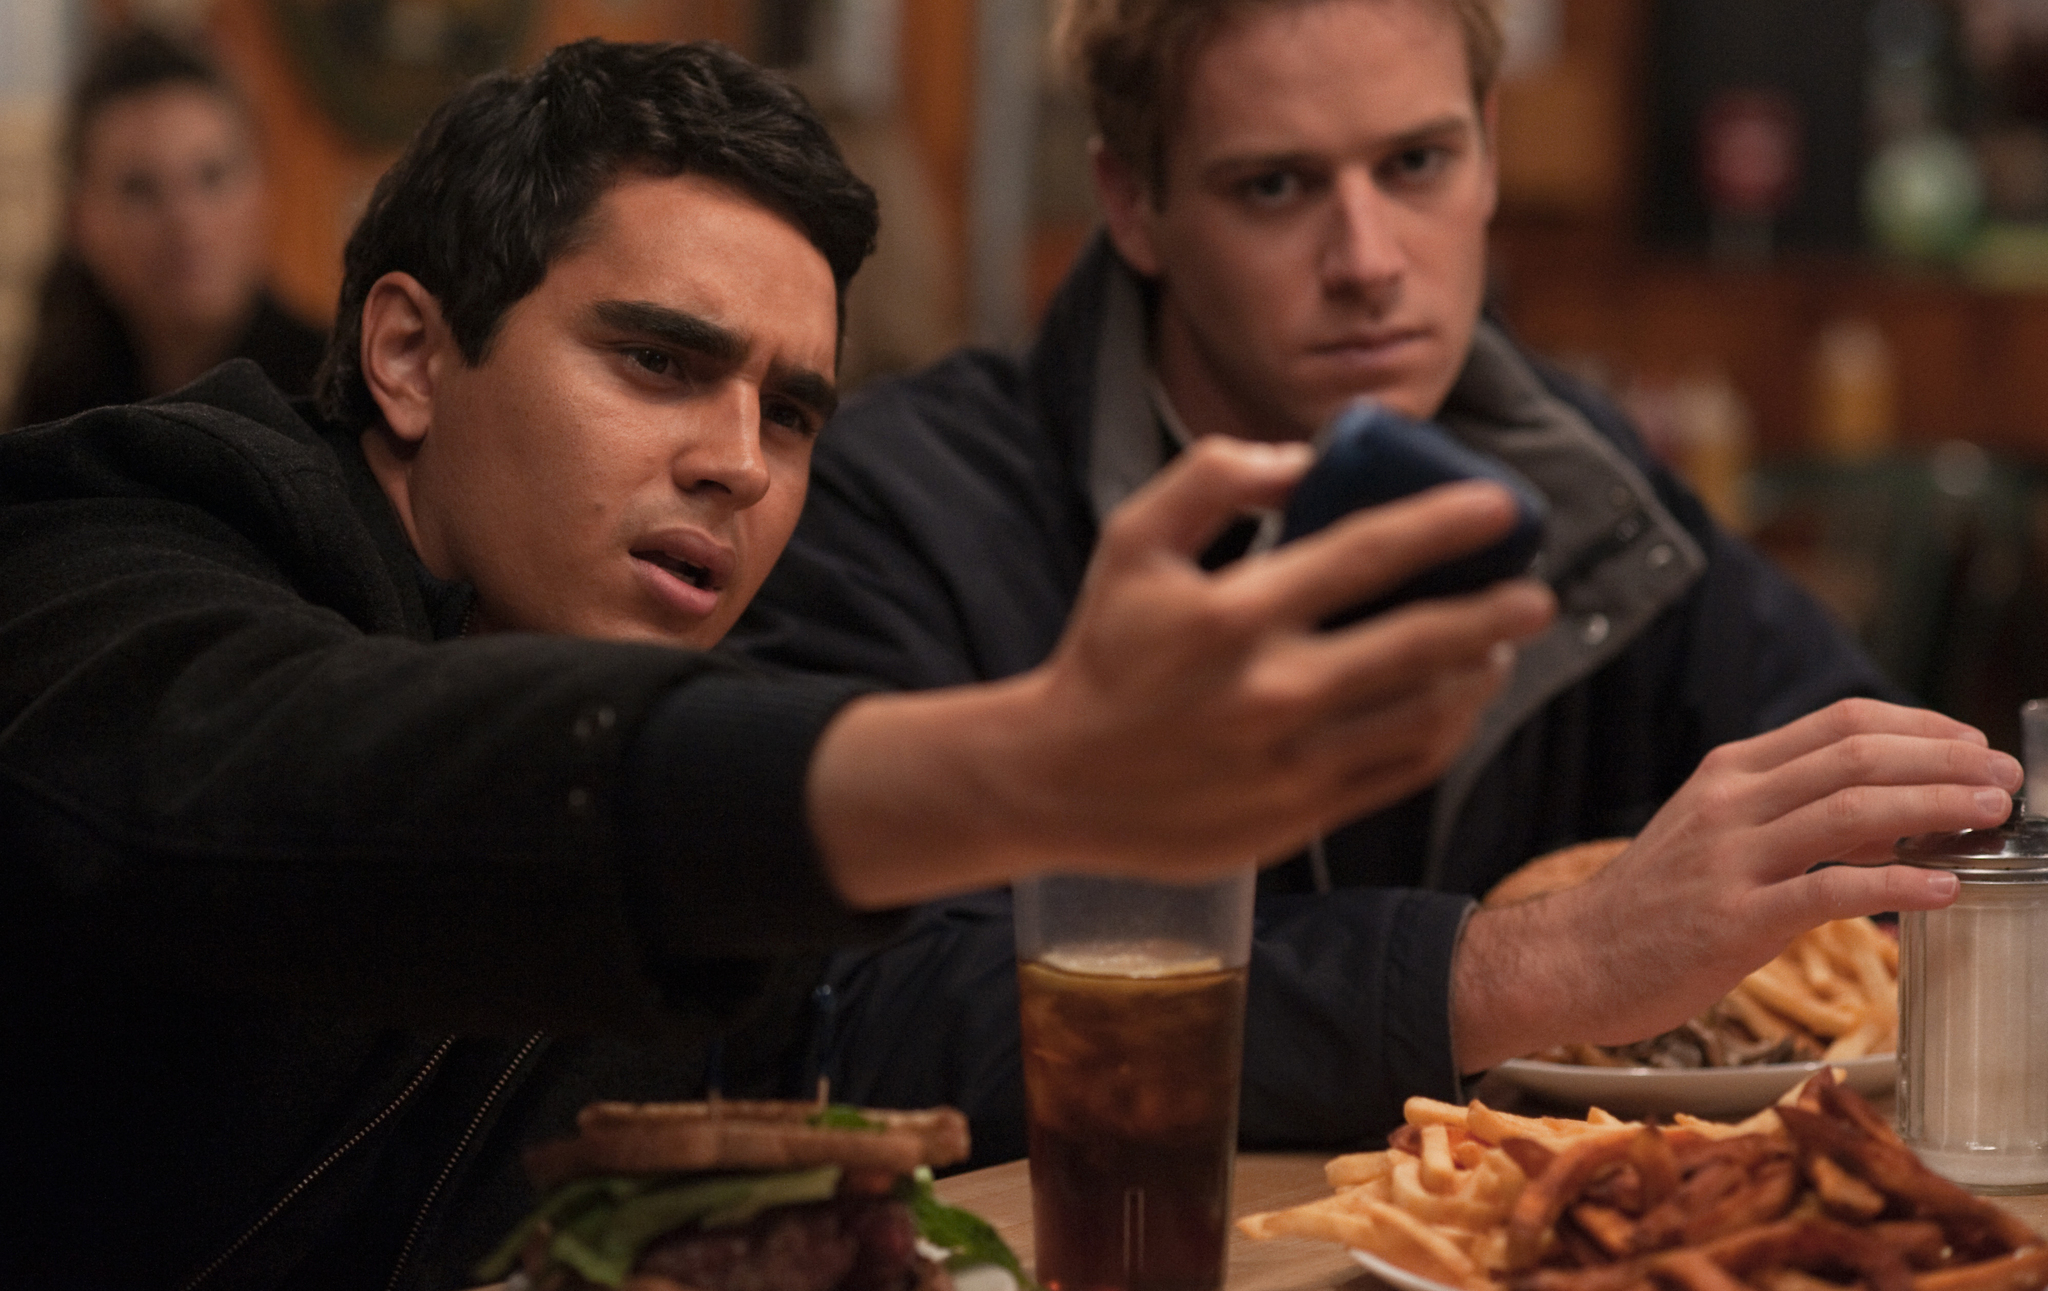 Max Minghella and Armie Hammer in The Social Network (2010)